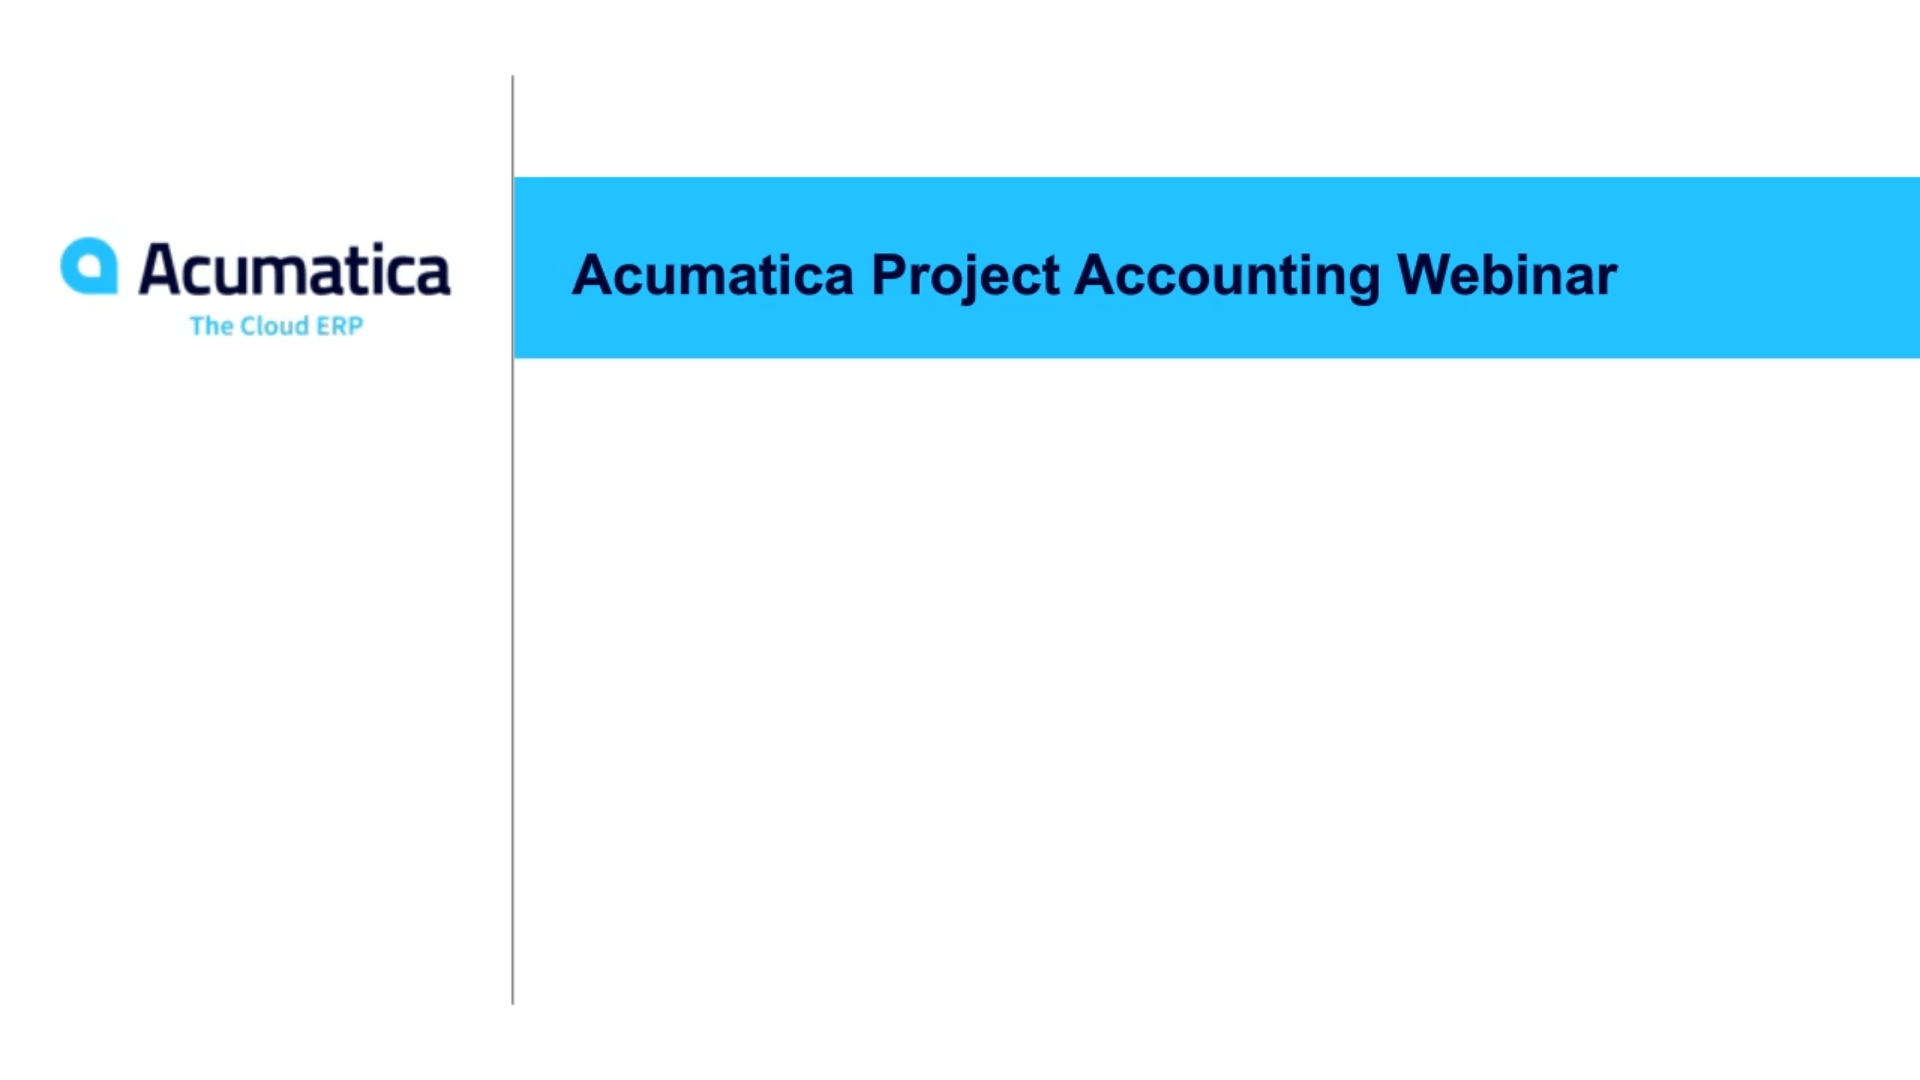 Acumatica Project Accounting Webinar